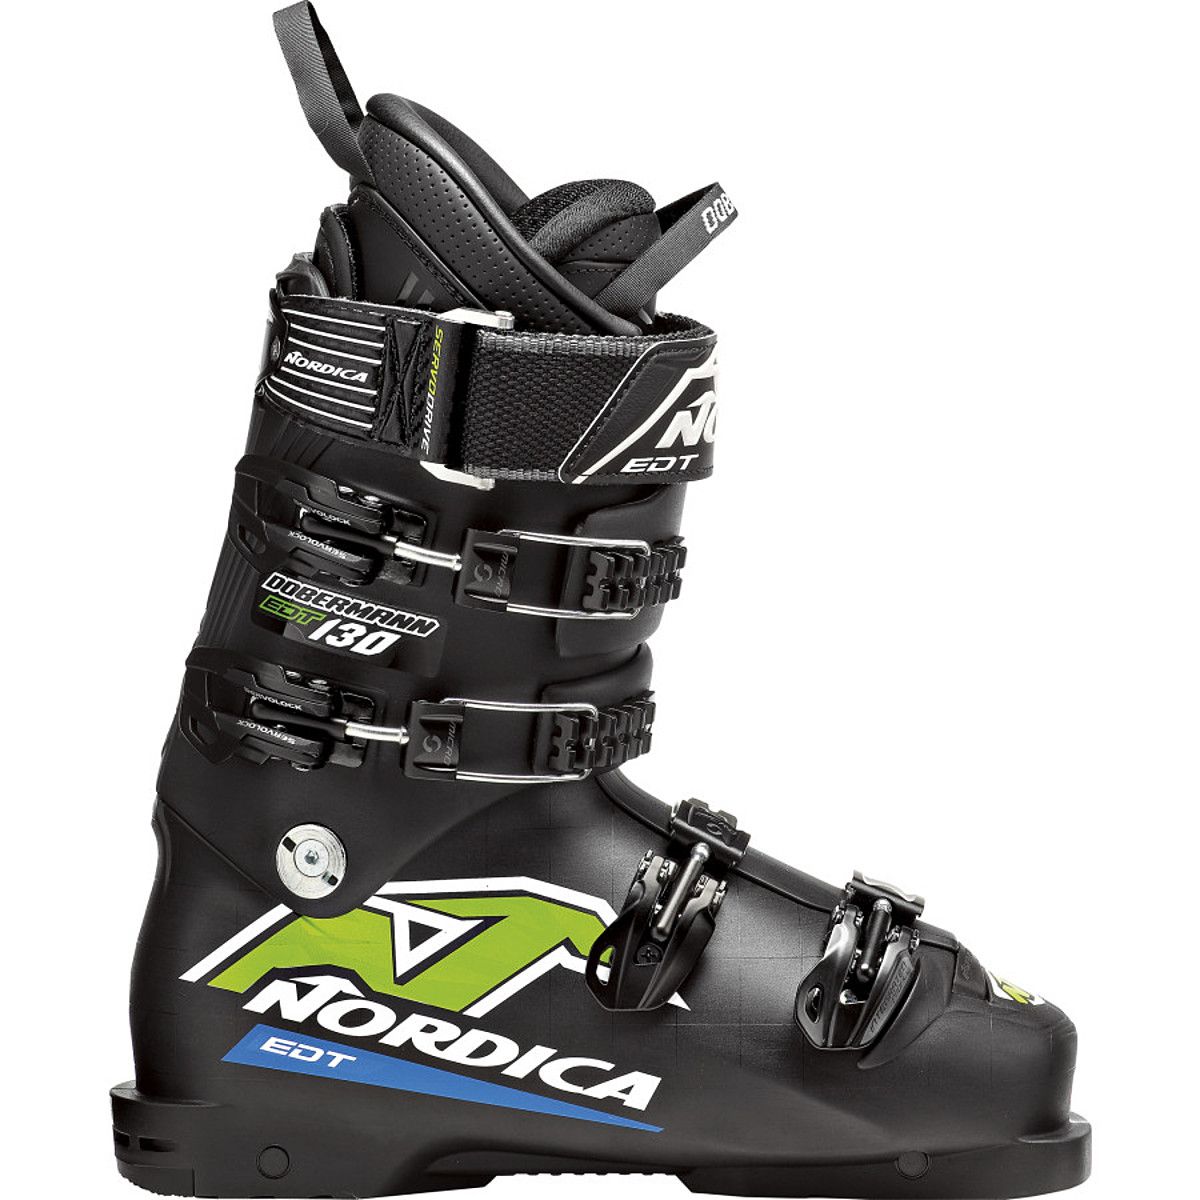 photo: Nordica Dobermann Pro EDT 130 Ski Boots alpine touring boot